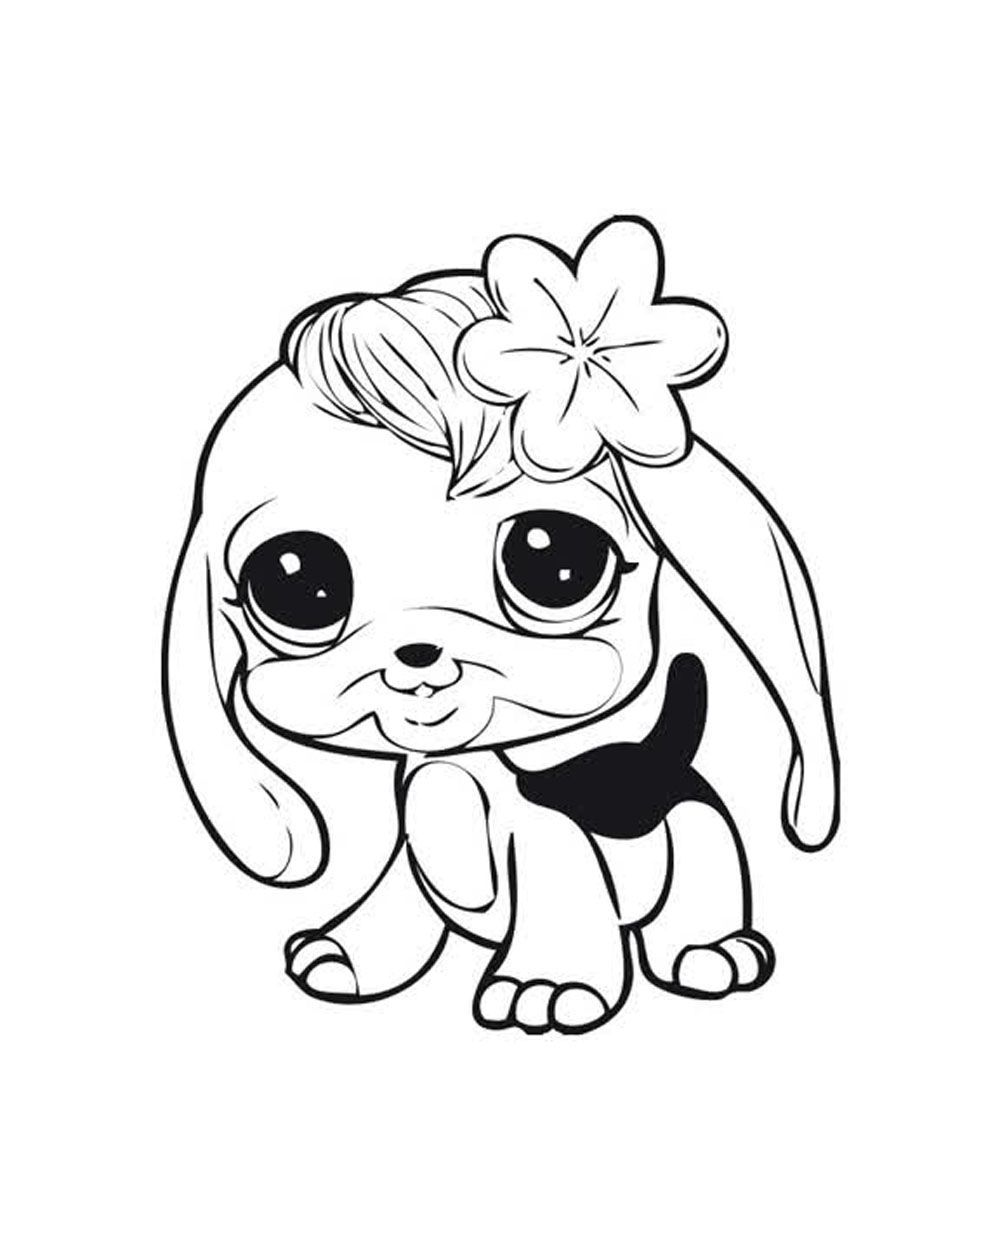 Lps Christmas Coloring Pages With Littlest Pet Shops Page For My Kids